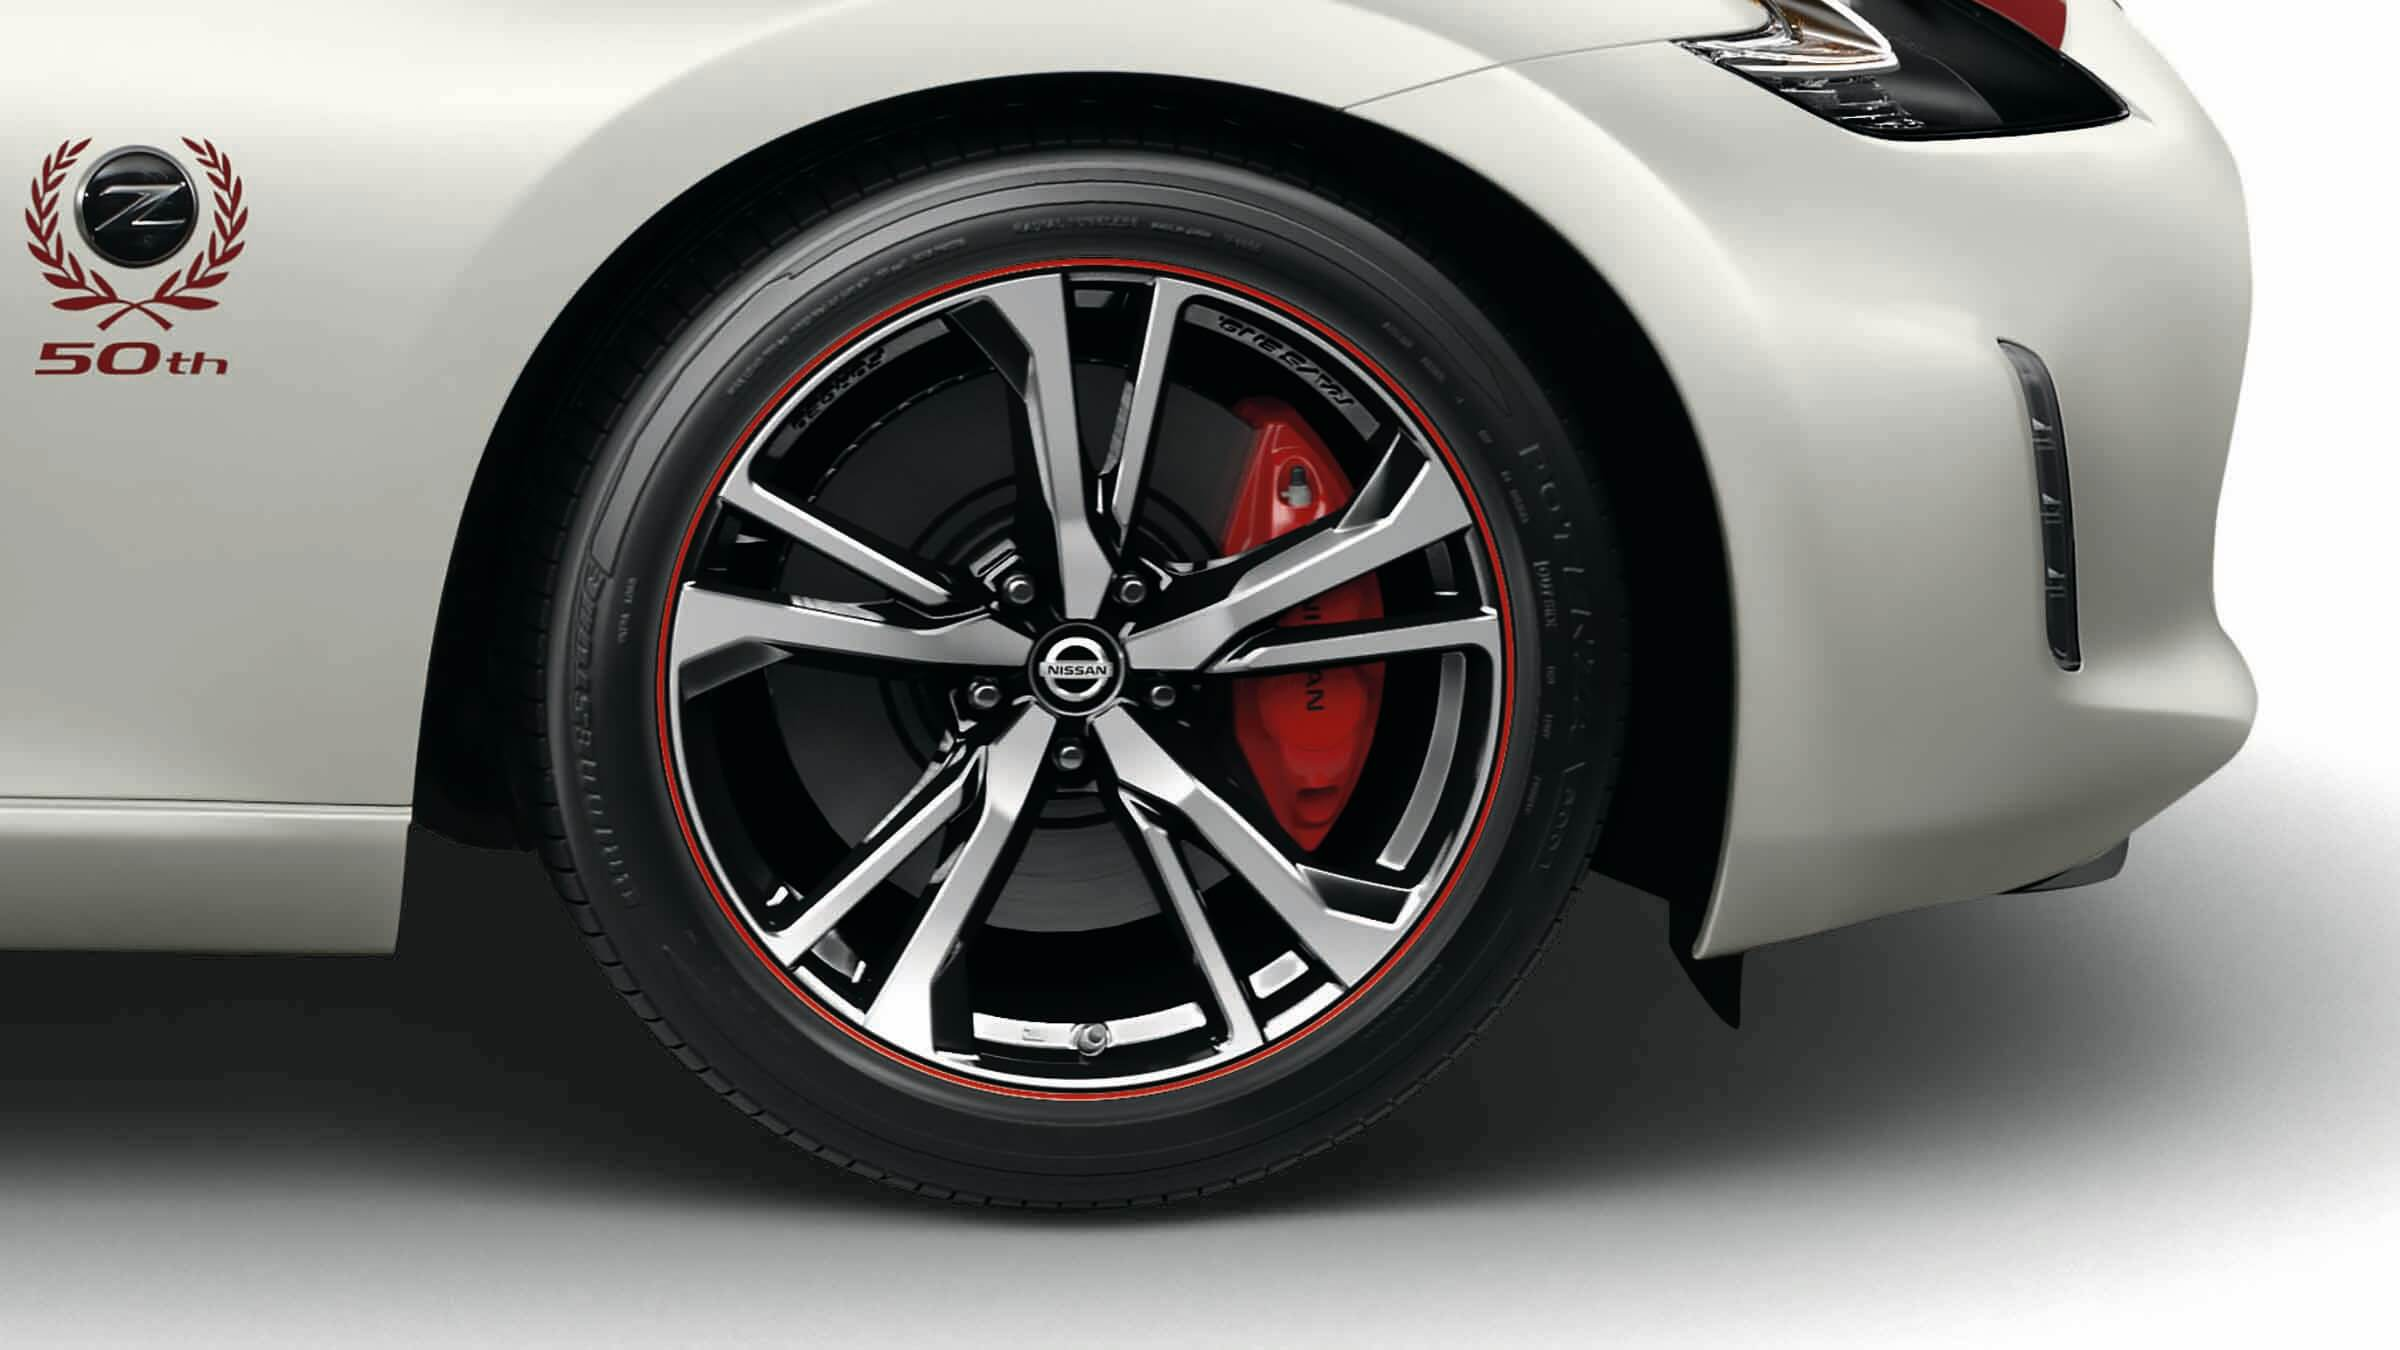 370Z 50th Anniversary Edition Alloy Wheels Image